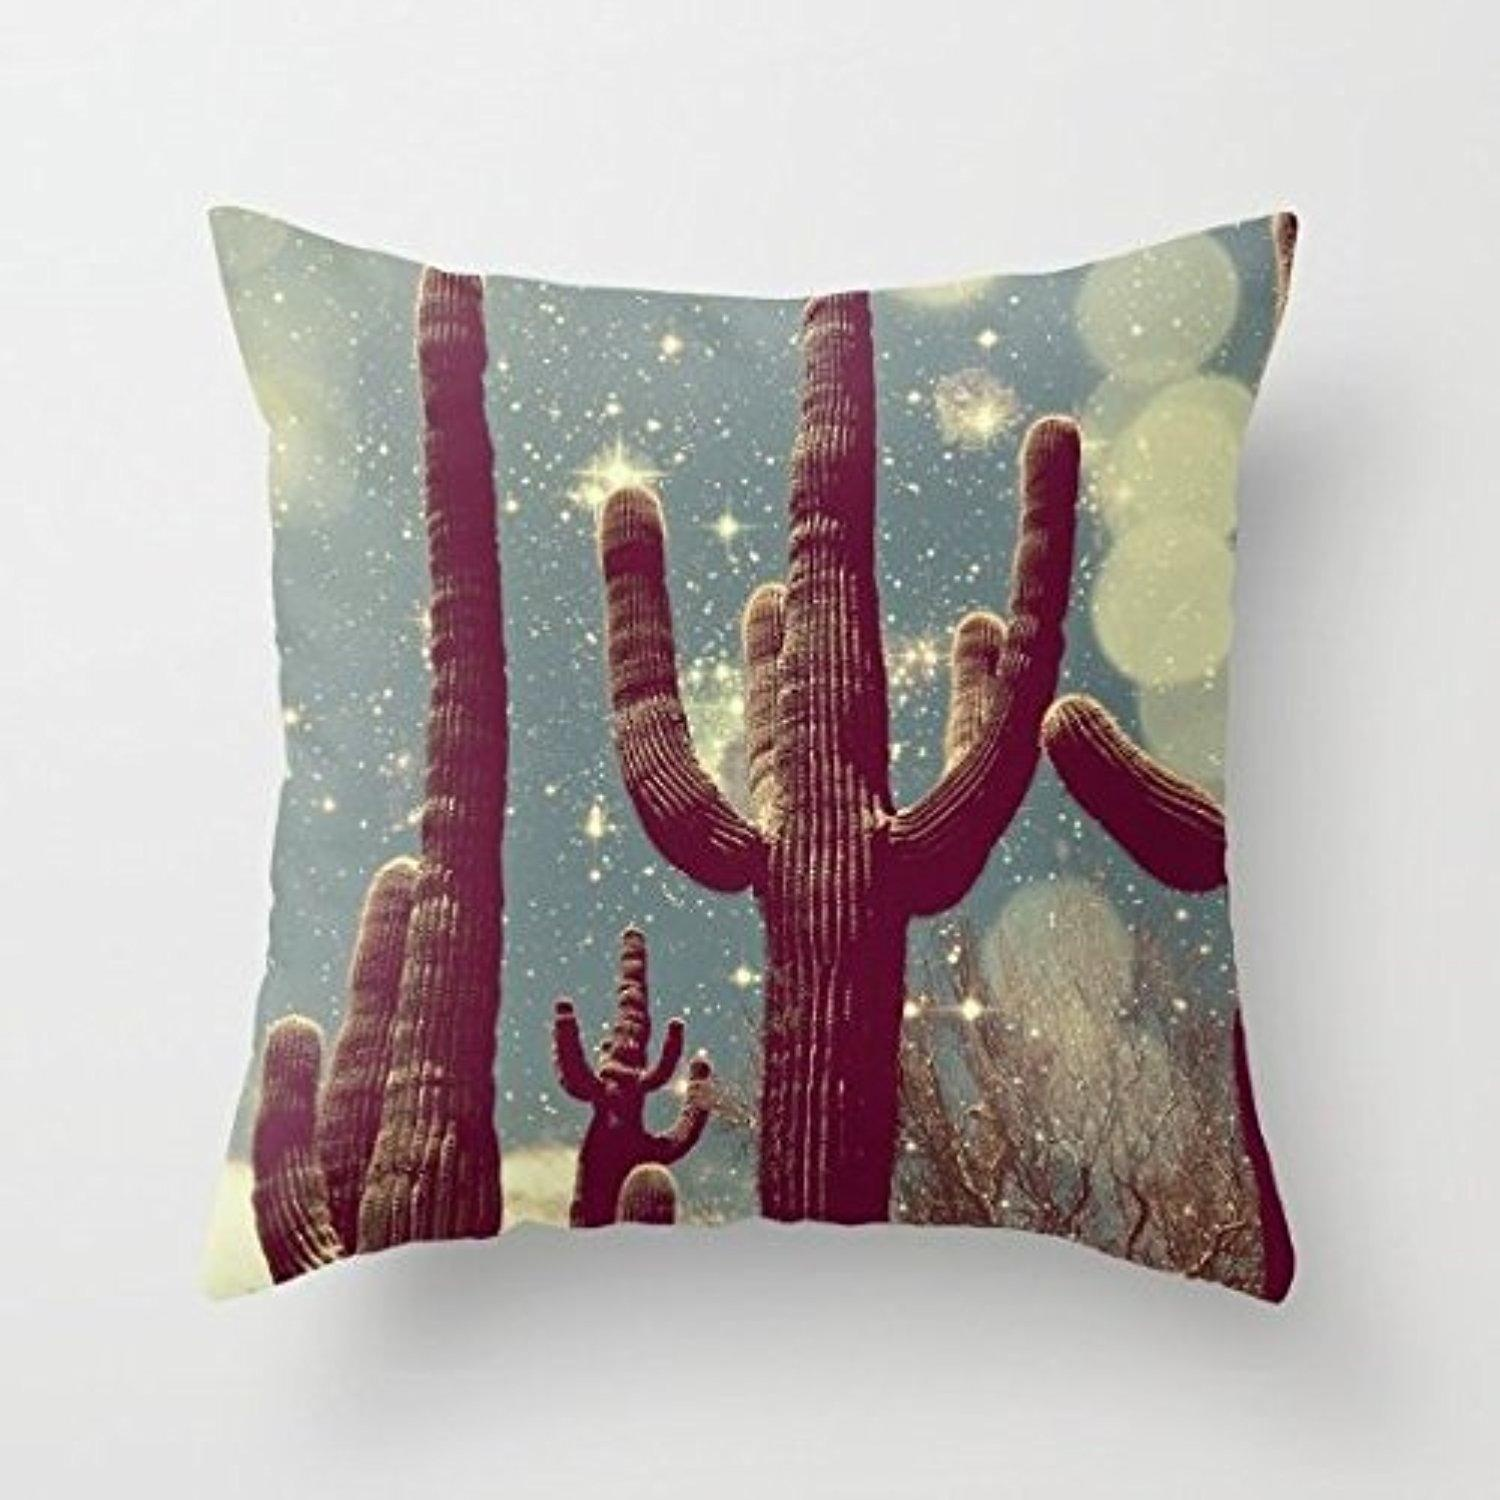 Decorative Pillow Covers | Cheap Throw Pillows Under $10 | Sofa Cushion Covers